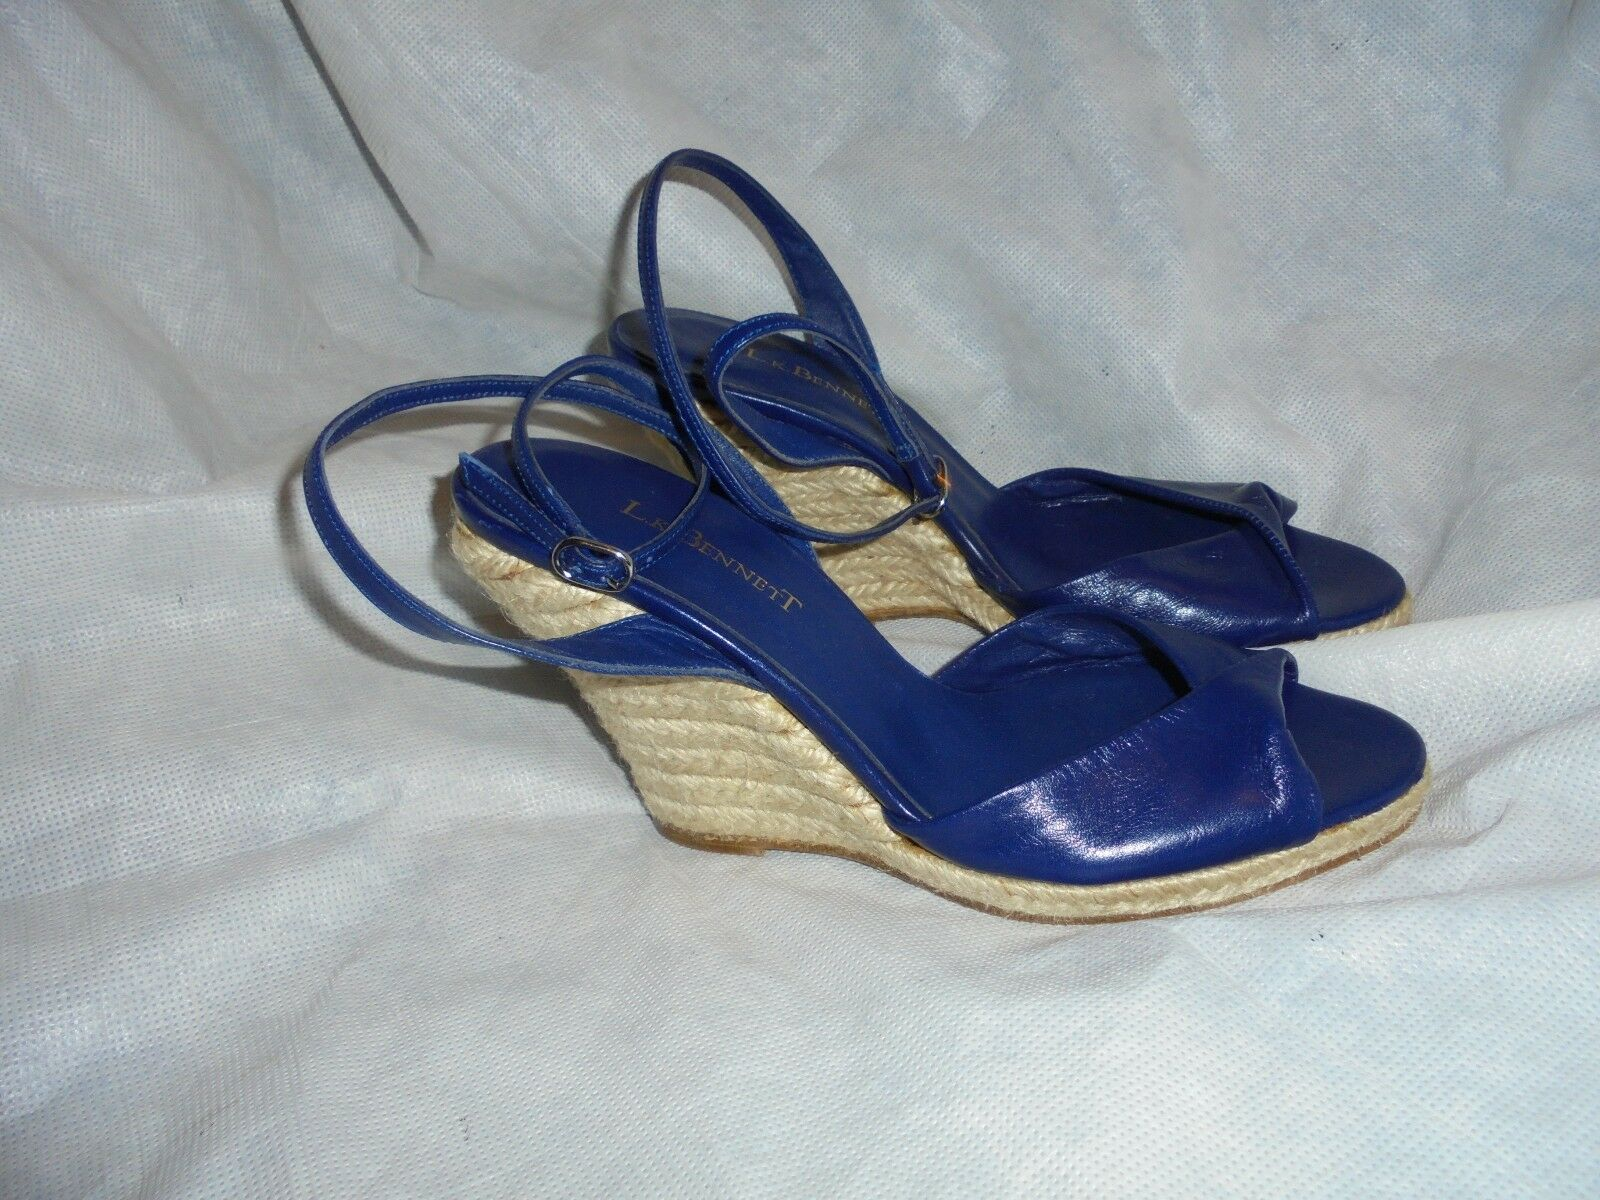 L.K. BENNETT LADIES  Blau LEATHER BUCKLE STRAP WEDGE SANDALS SIZE UK 4 EU 37 VGC